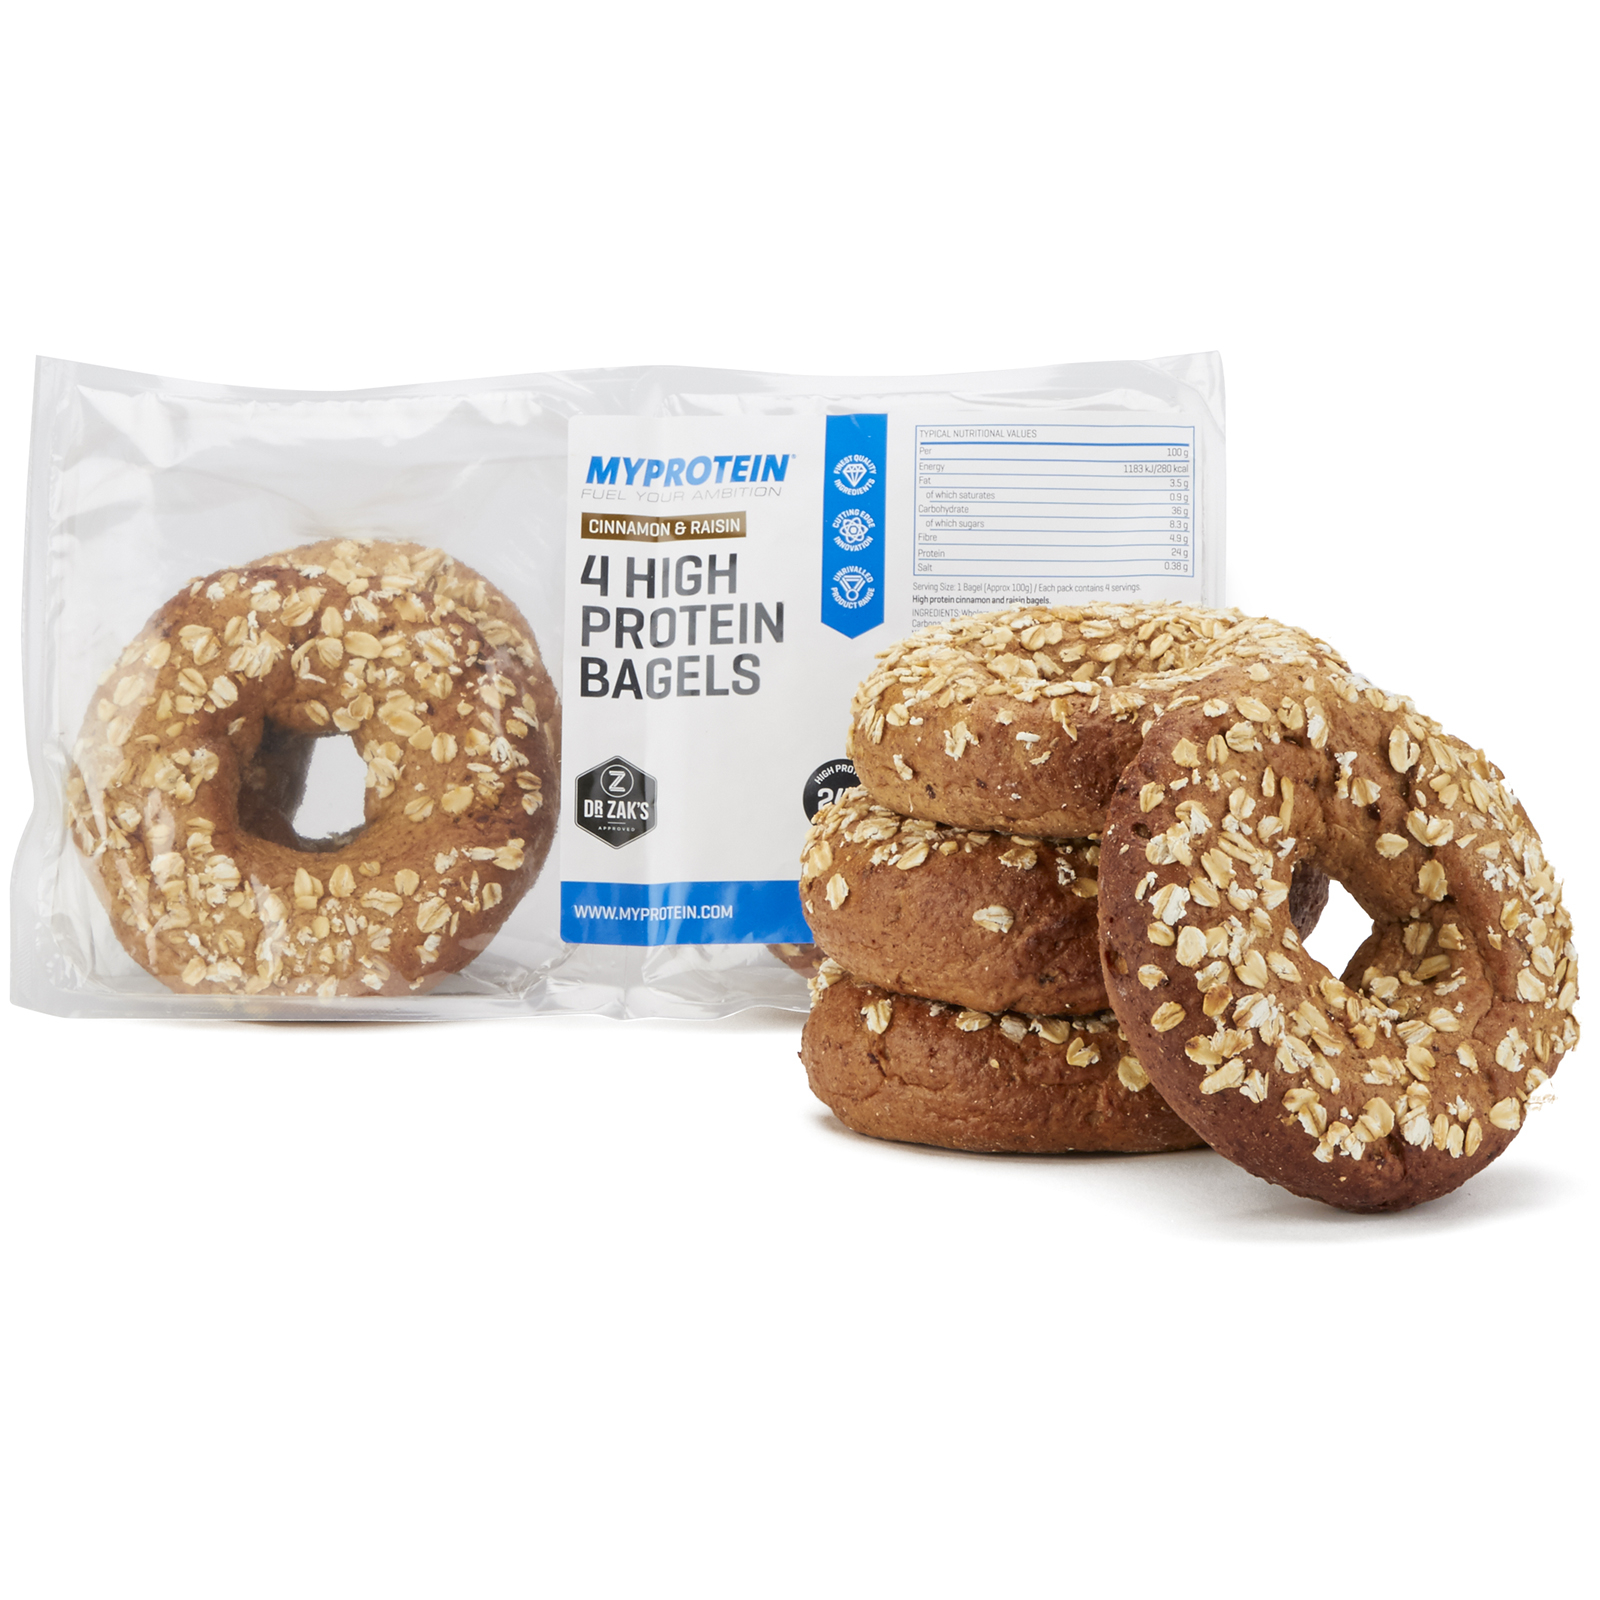 Dr Zak's High Protein Bagels